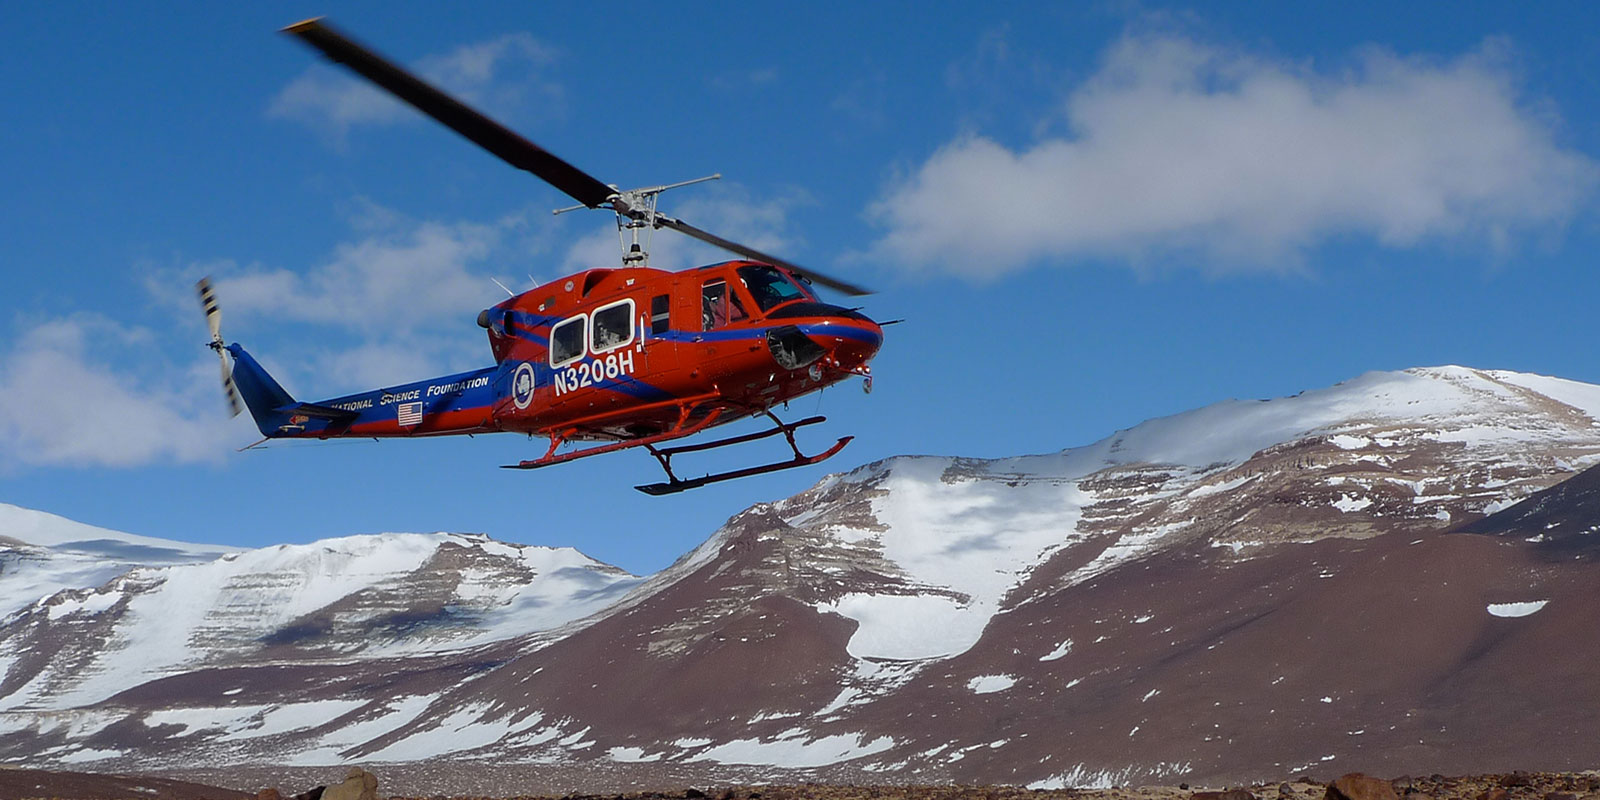 A helicopter takes off with the barren Antarctic skyline in the background